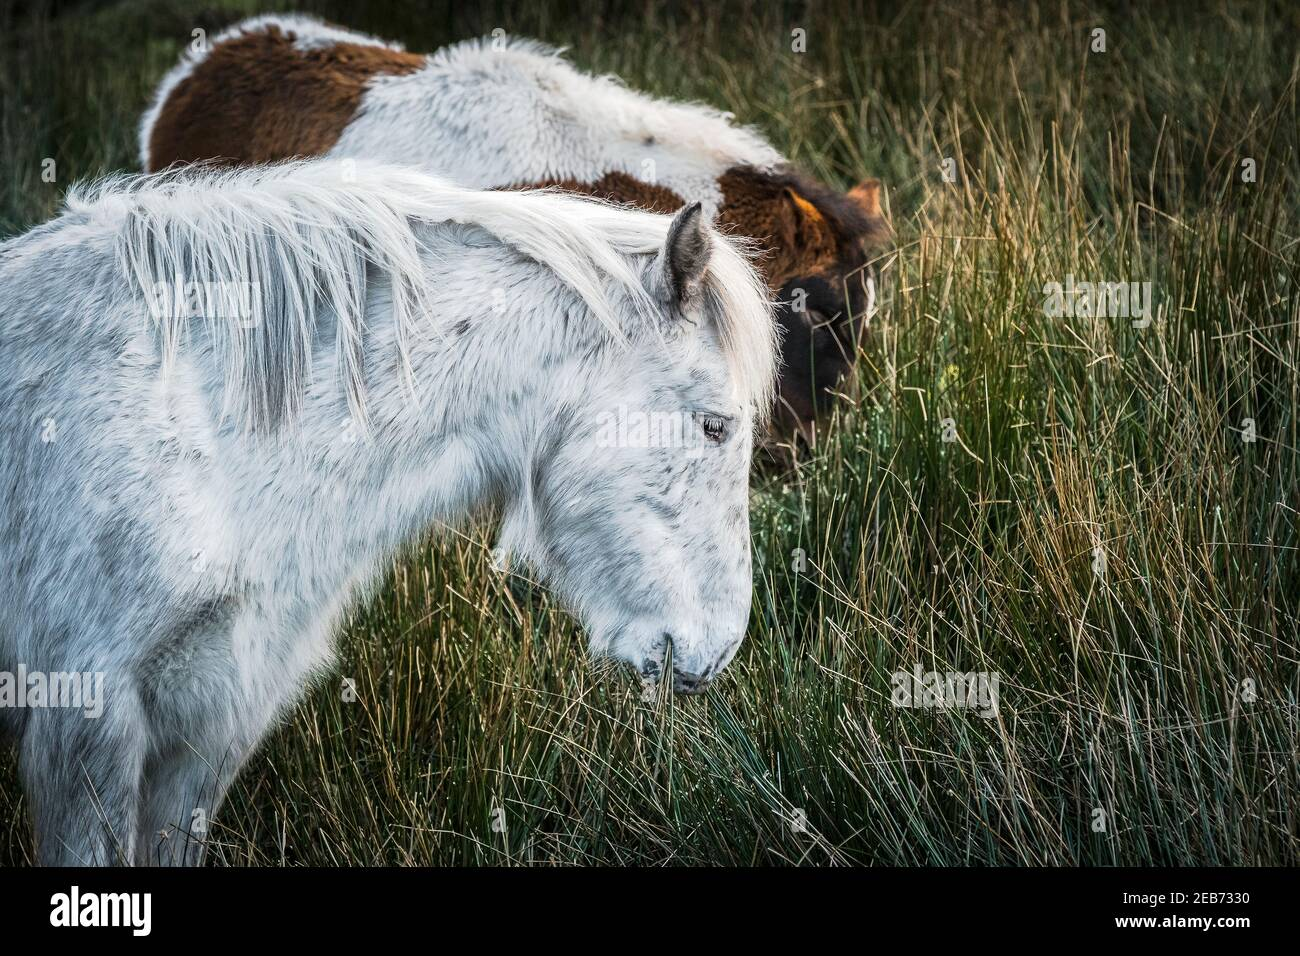 Iconic wild Bodmin Ponies grazing on Bodmin Moor in Cornwall. Stock Photo